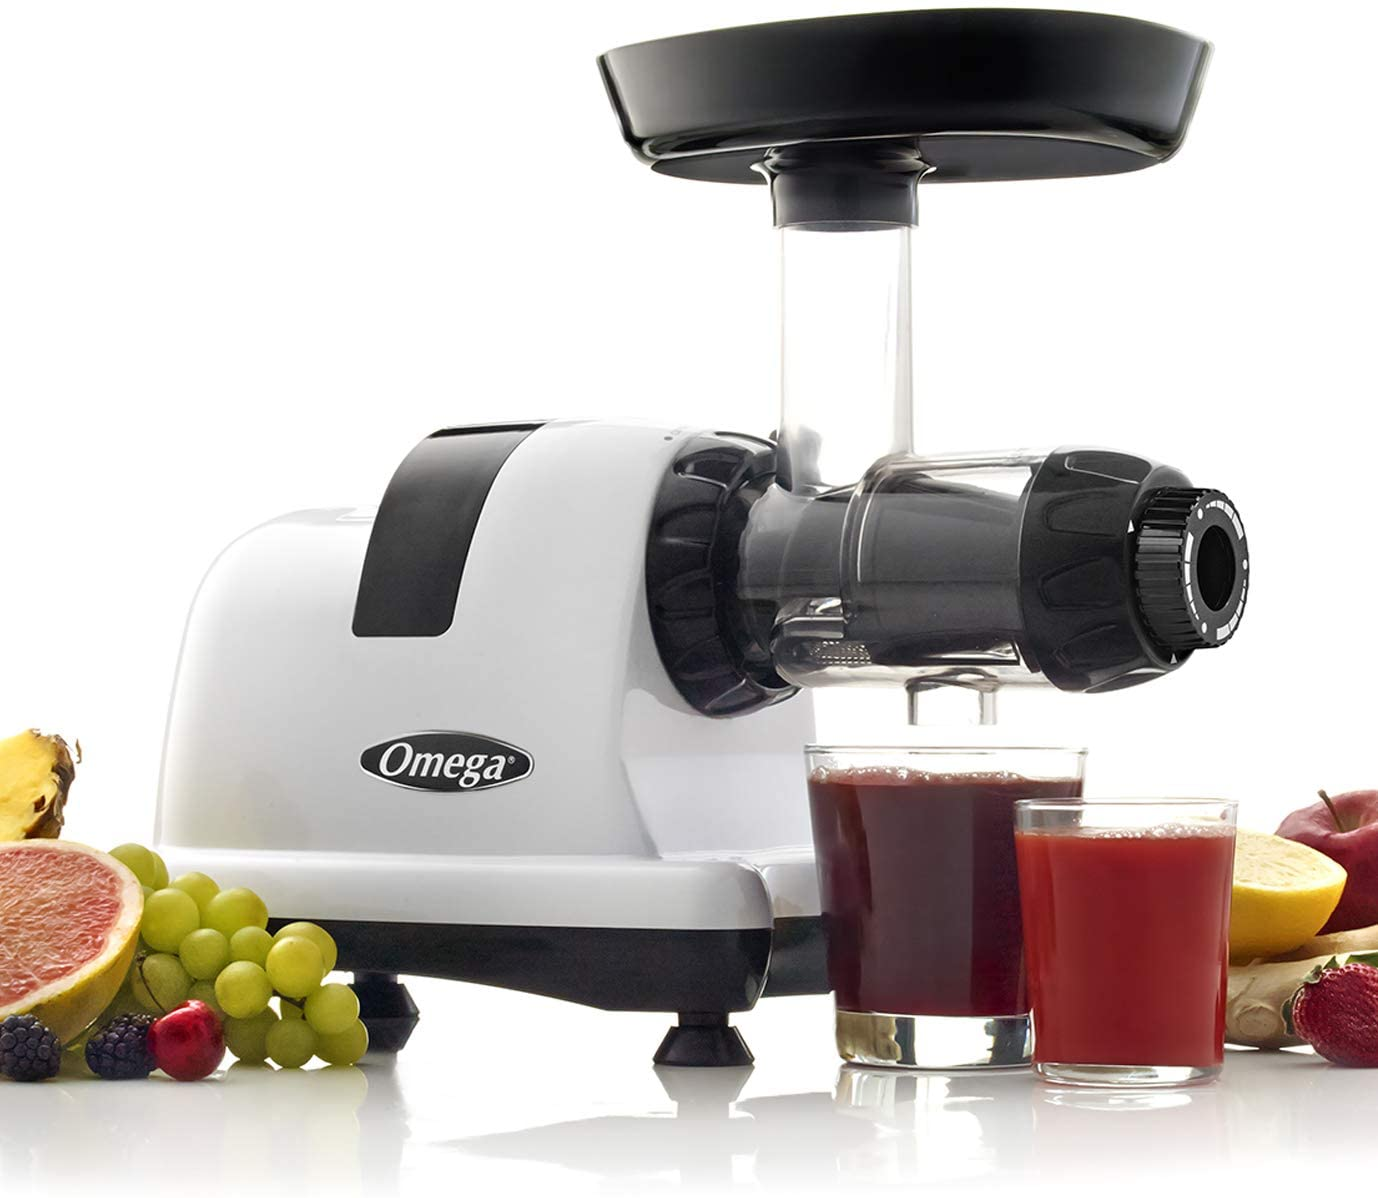 Omega J8006HDS Nutrition Center Quiet Dual-Stage Slow Speed Masticating Juicer Makes Fruit and Vegetable 80 Revolutions per Minute High Juice